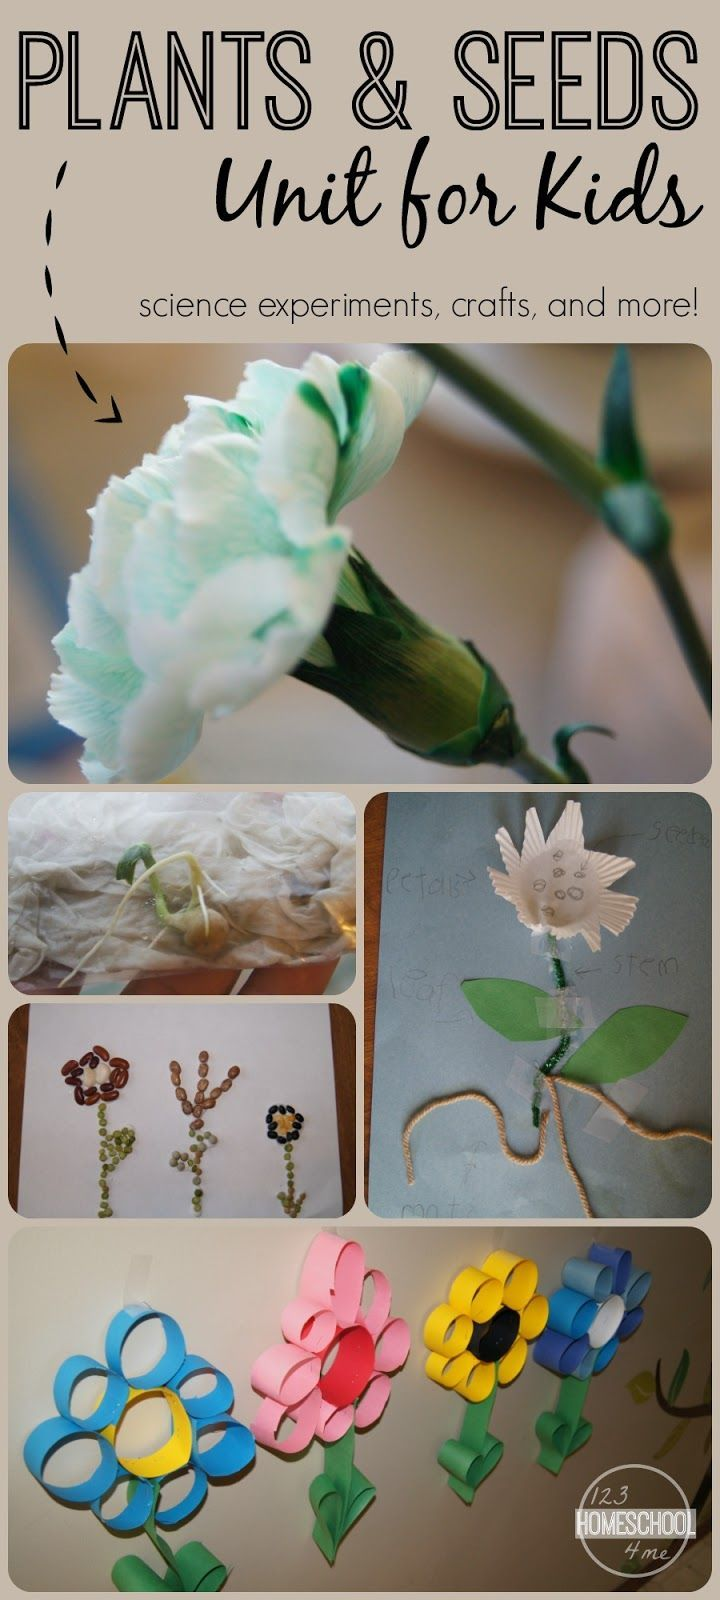 301 best gr 1 science needs of plants and animals images on plants and seeds unit for kids with science experiments crafts for kids and more robcynllc Gallery